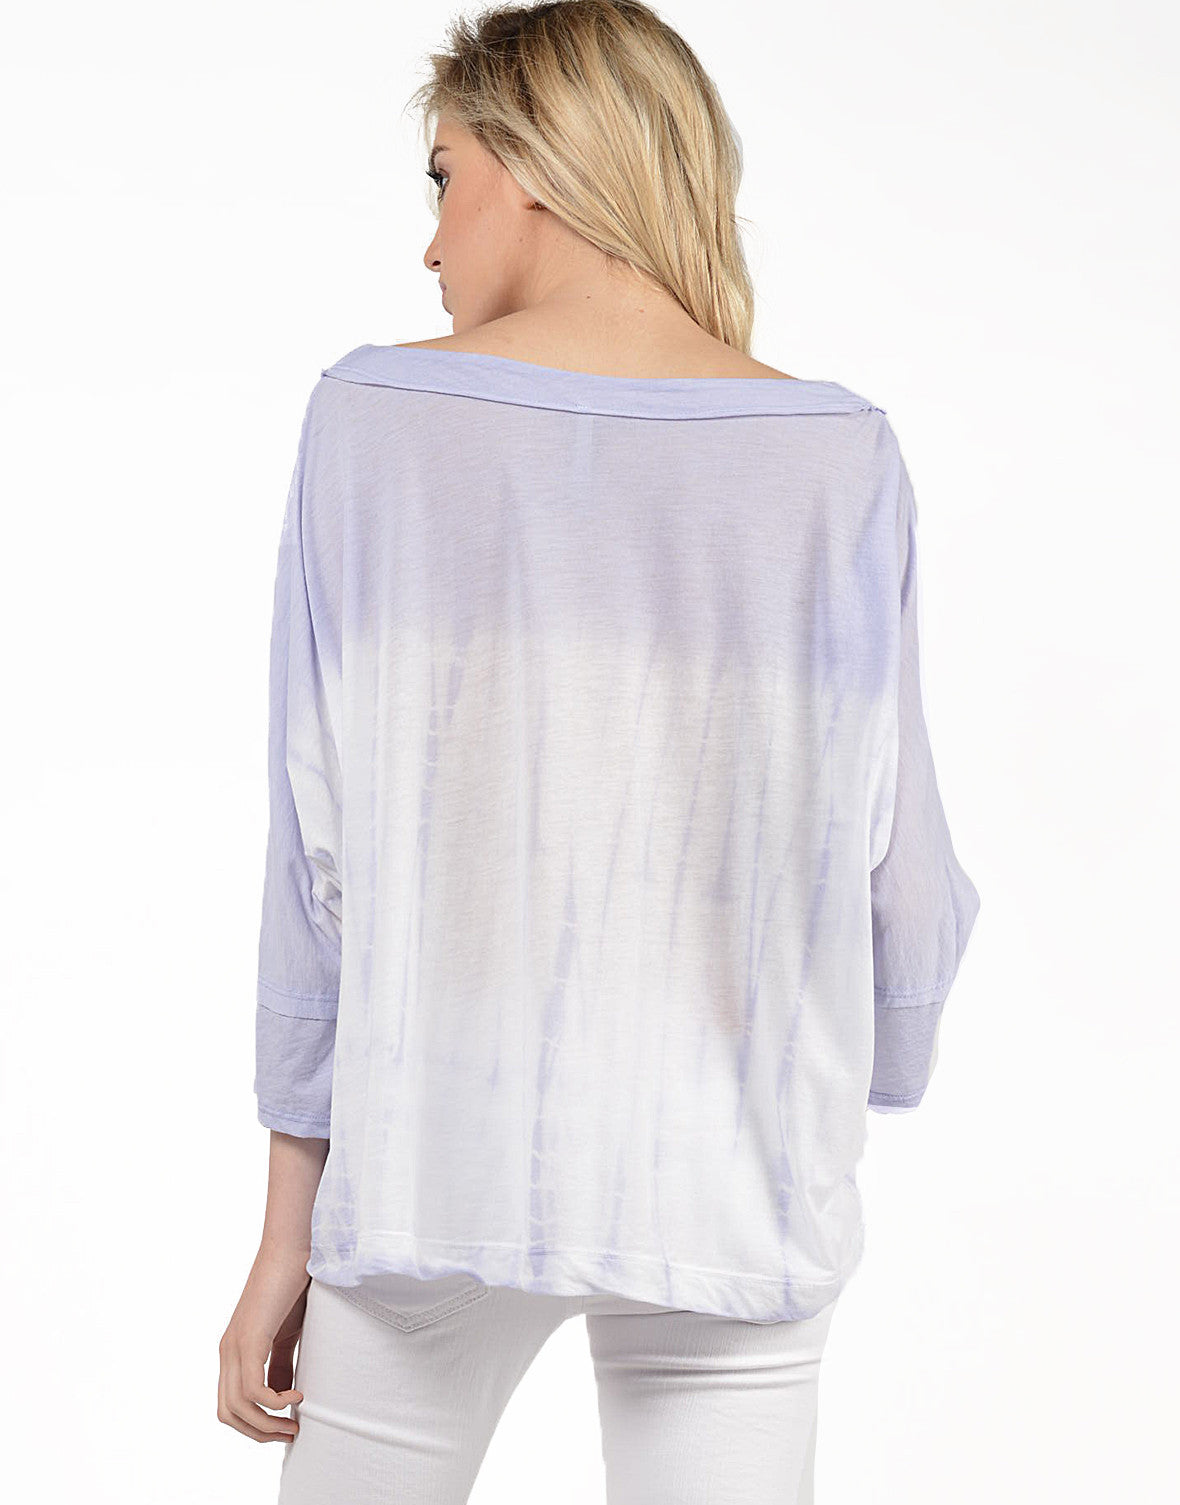 Back View of Tie-Dye For Dolman Top